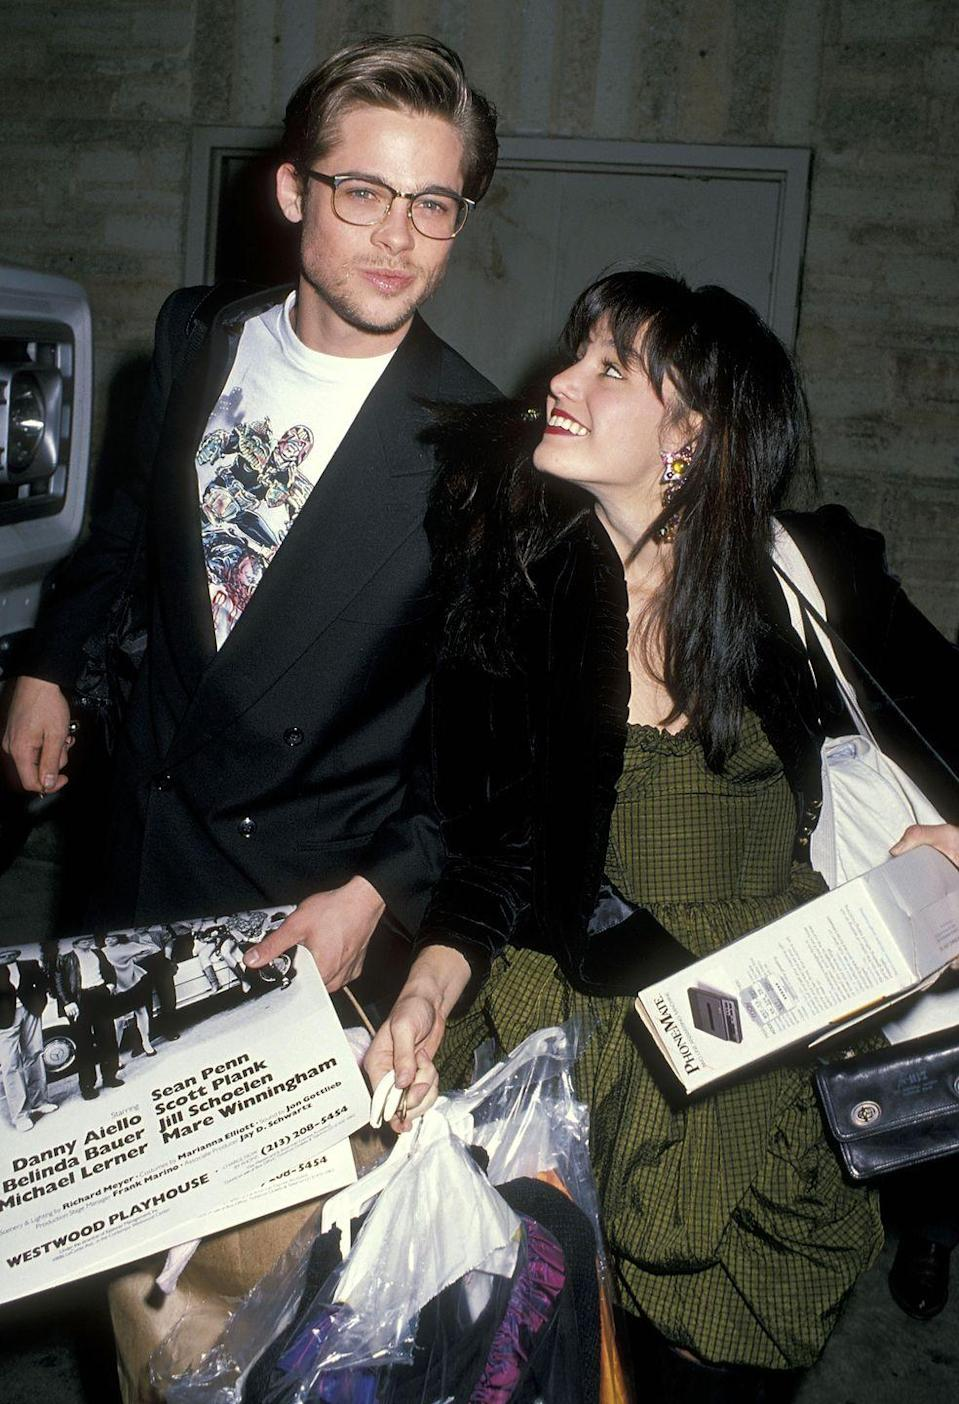 "<p>In 1989, Pitt and Schoelen got engaged, but it only lasted three months. In a <a href=""https://www.ctvnews.ca/brad-pitt-recalls-being-dumped-by-ex-fiancee-jill-schoelen-1.633066"" rel=""nofollow noopener"" target=""_blank"" data-ylk=""slk:2011 interview"" class=""link rapid-noclick-resp"">2011 interview</a>, Pitt revealed that he went to visit his then-fiancée in Budapest where she was filming a movie. When he got there, she revealed that she'd fallen in love with the director of her movie and the two called it quits. Pitt later said that Schoelen was his first big heartbreak. </p>"